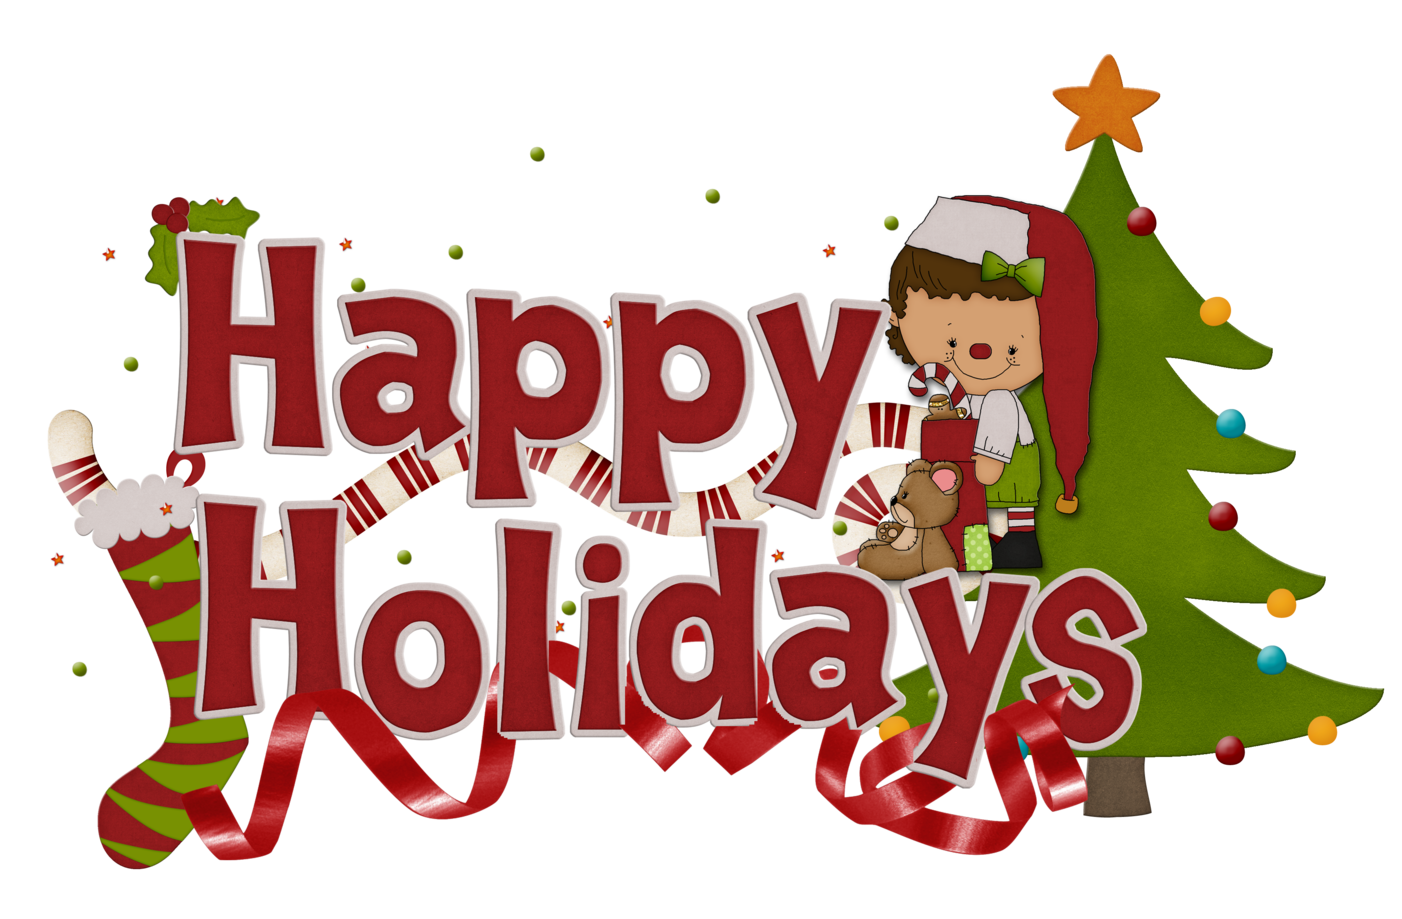 Holiday clipart happy hour 5 Holiday clipart, Christmas